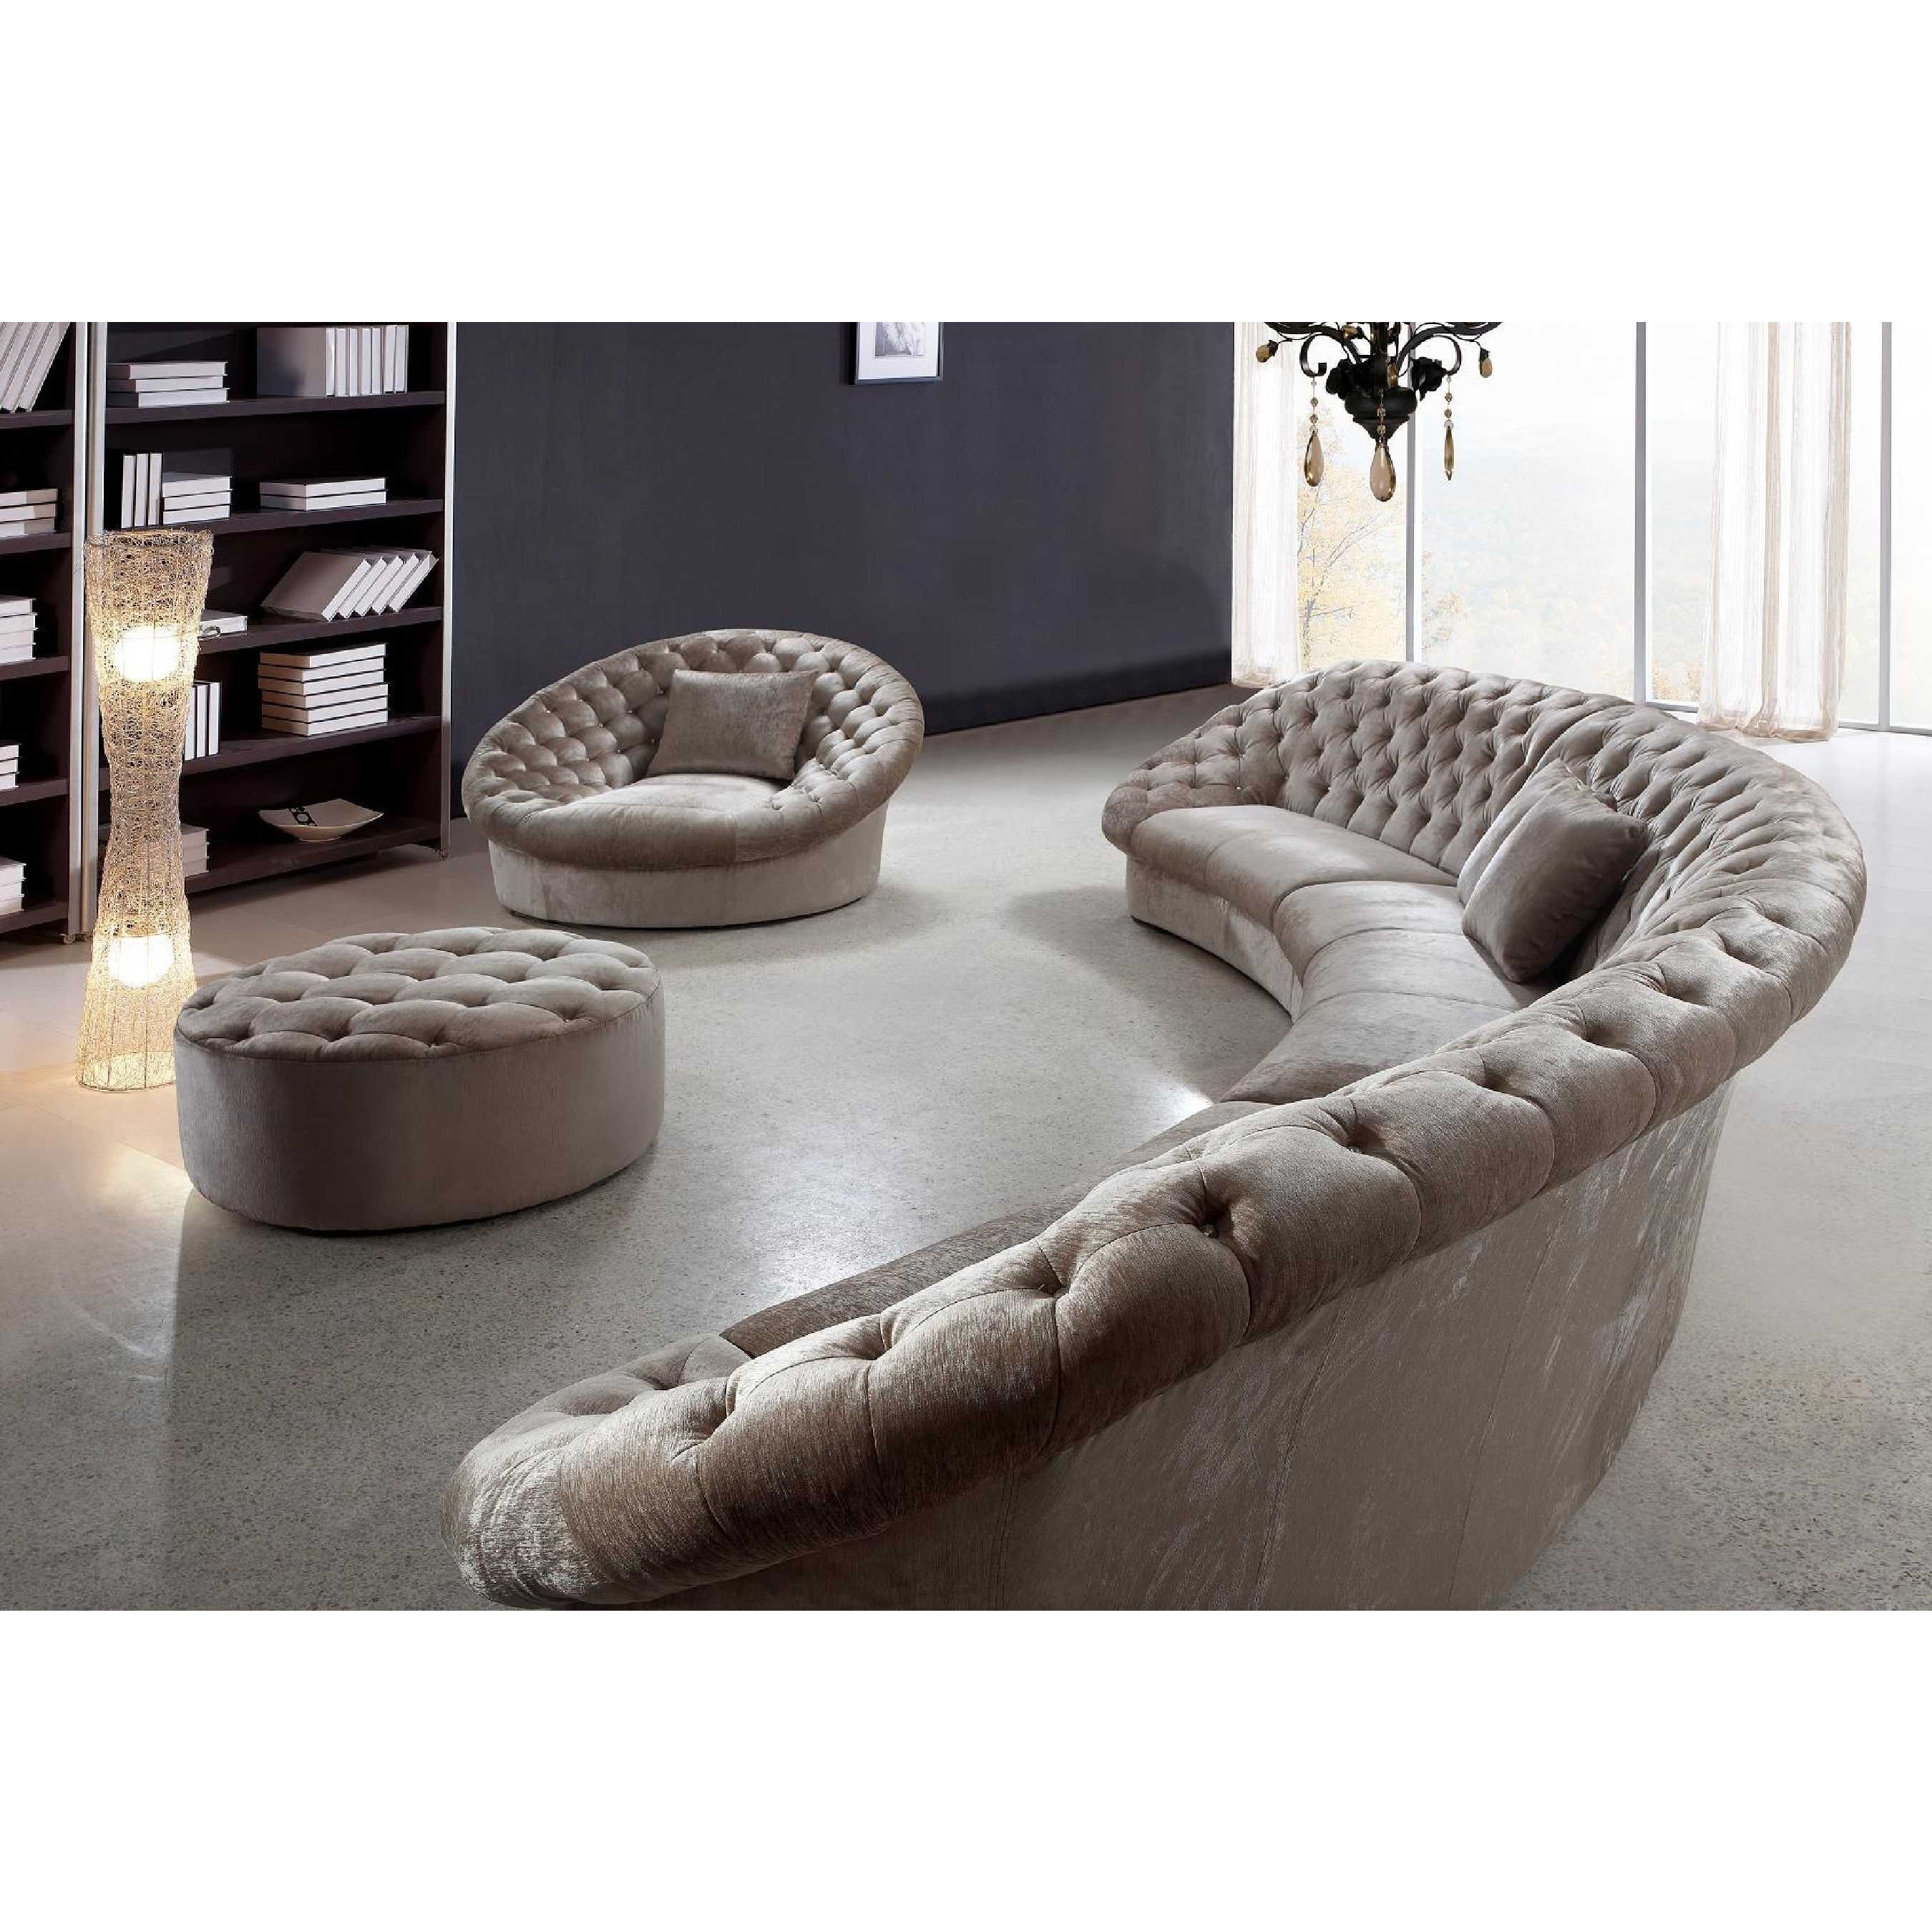 Sofa : Luxury Round Sectional Sofa Bed Curved Semi Circular Sofas Regarding Semicircular Sofas (View 4 of 10)